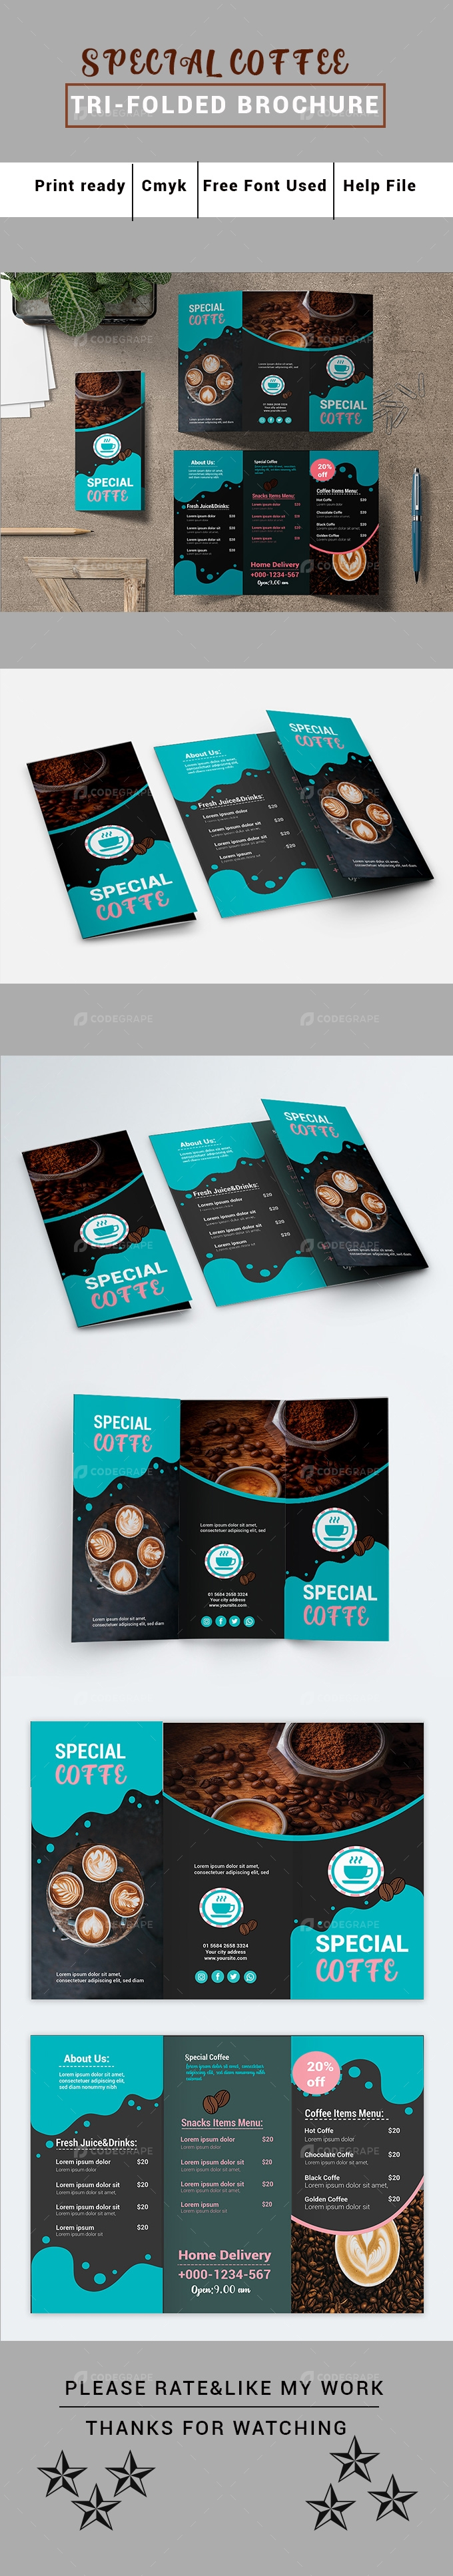 Special Coffee Tri Folded Brochure